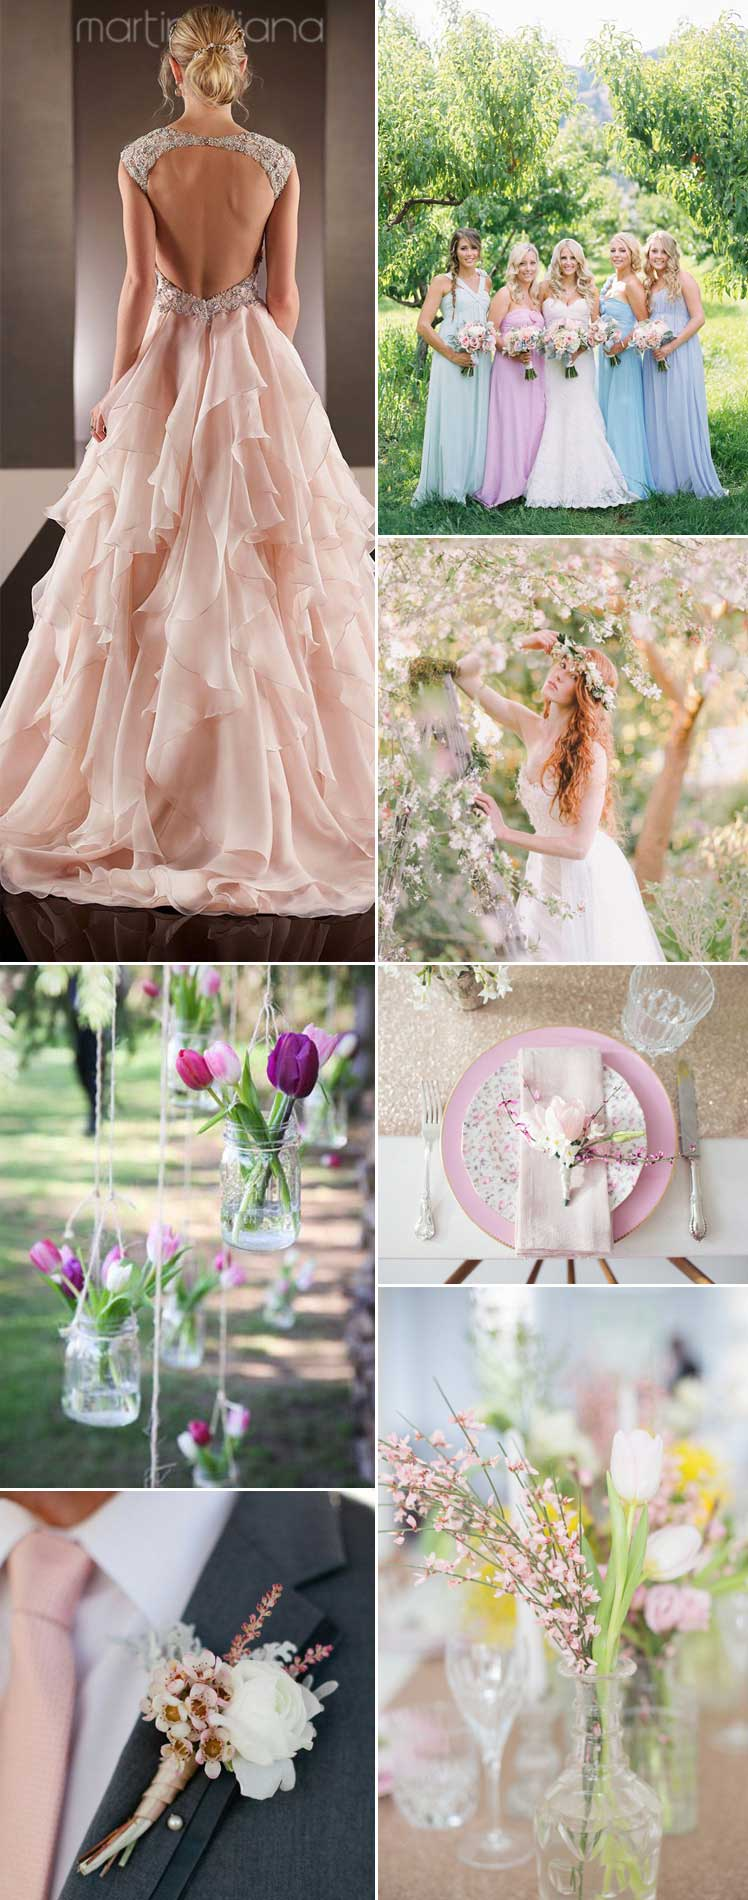 be inspired by spring blooms for your wedding day